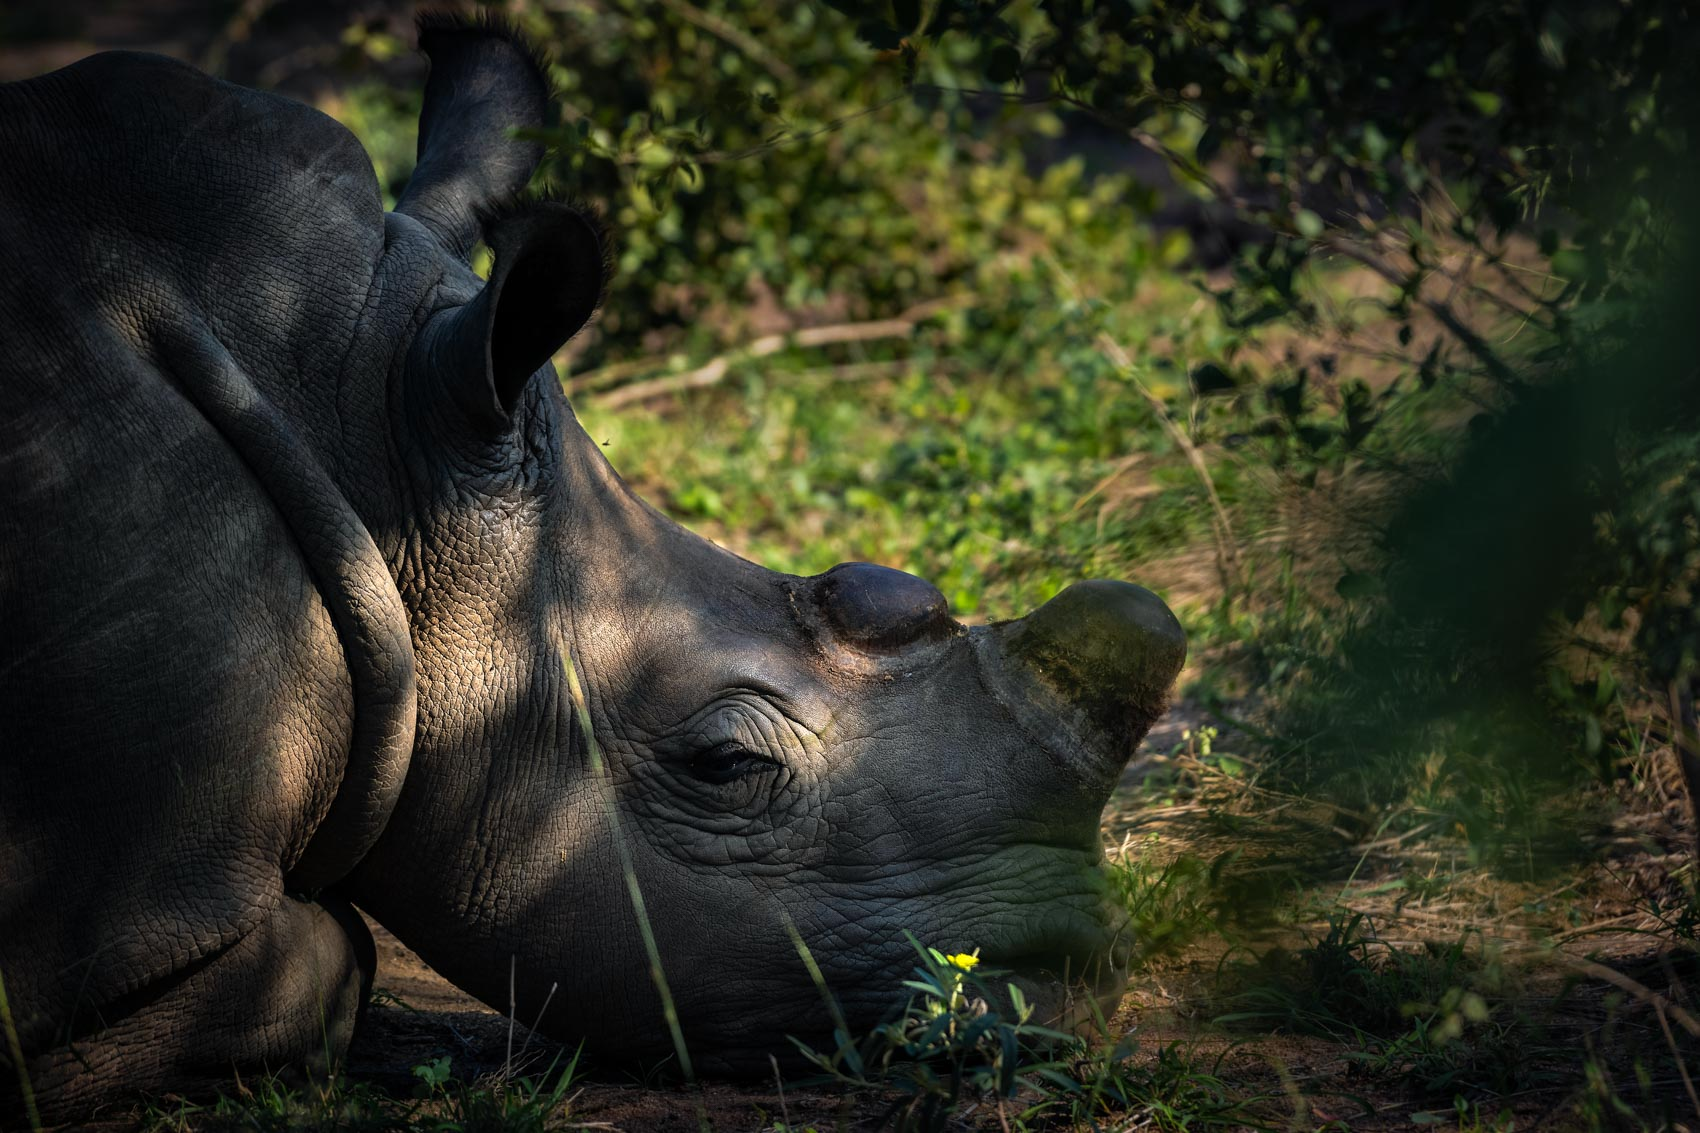 A dehorned southern white rhino paying down in the grass at the Hoedspruit Endangered Species Centre in South Africa